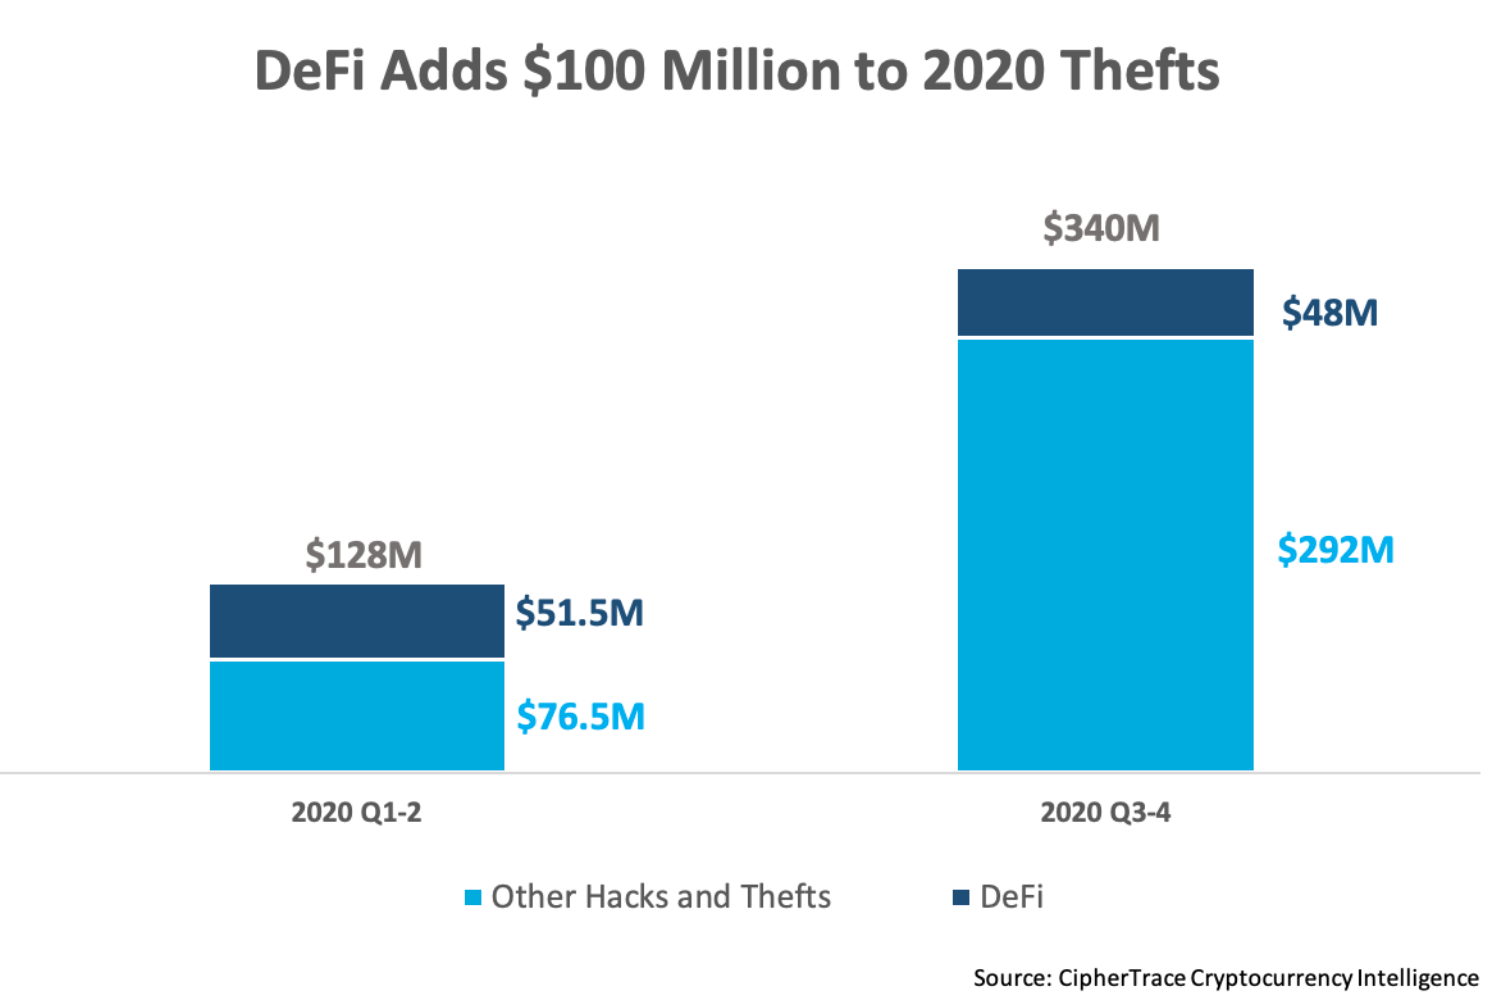 DeFi sector loses $100 million to hackers in 2020